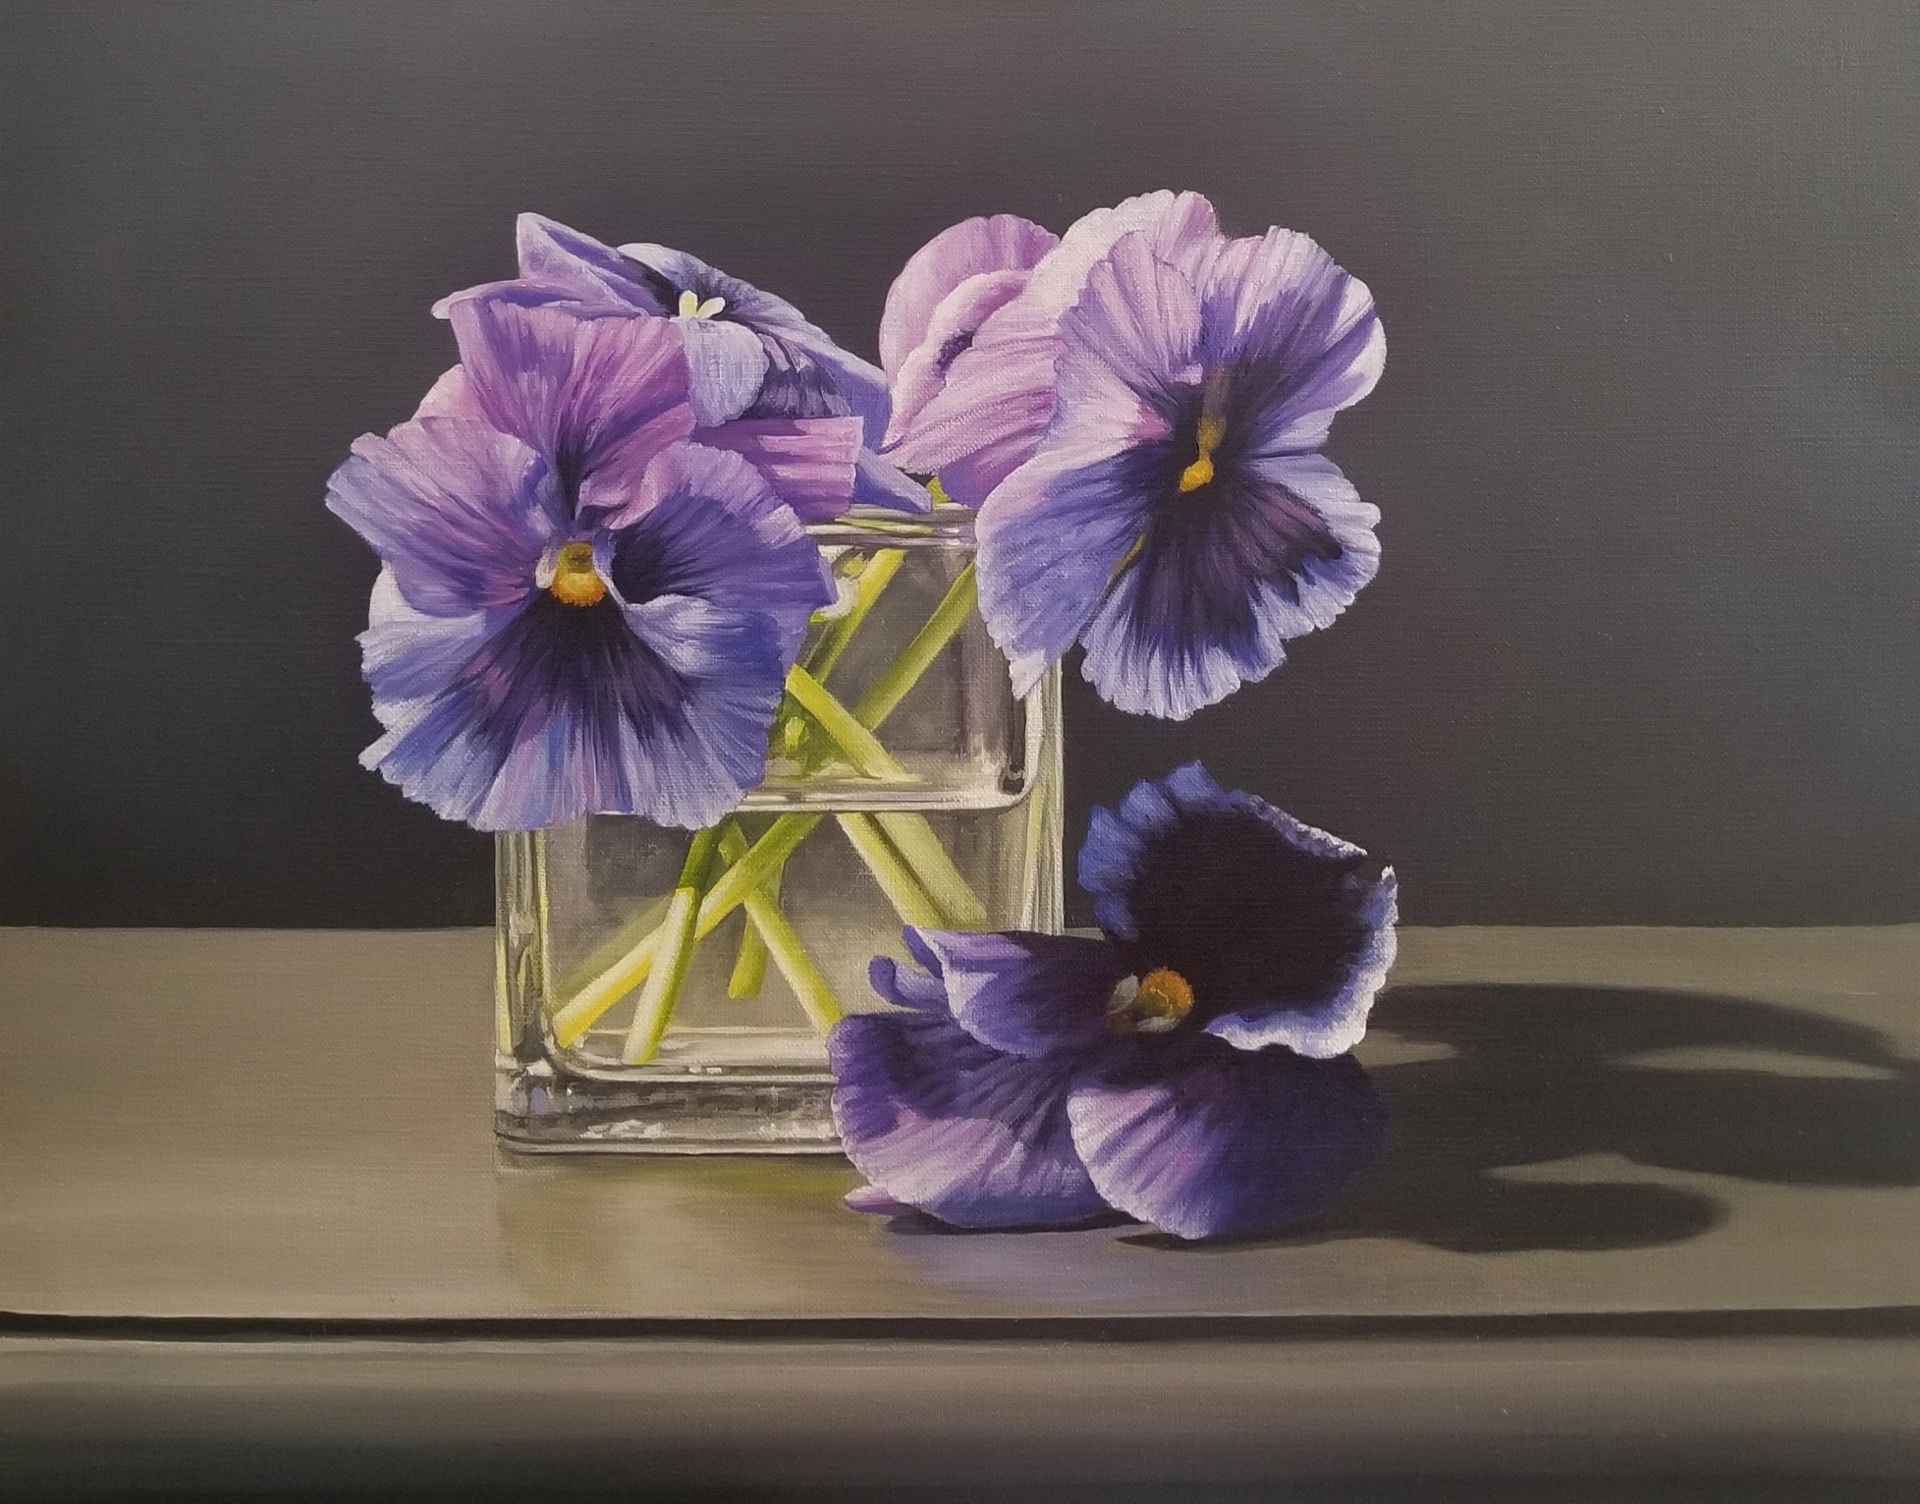 Pansies in Vase by Loren DiBenedetto, OPA